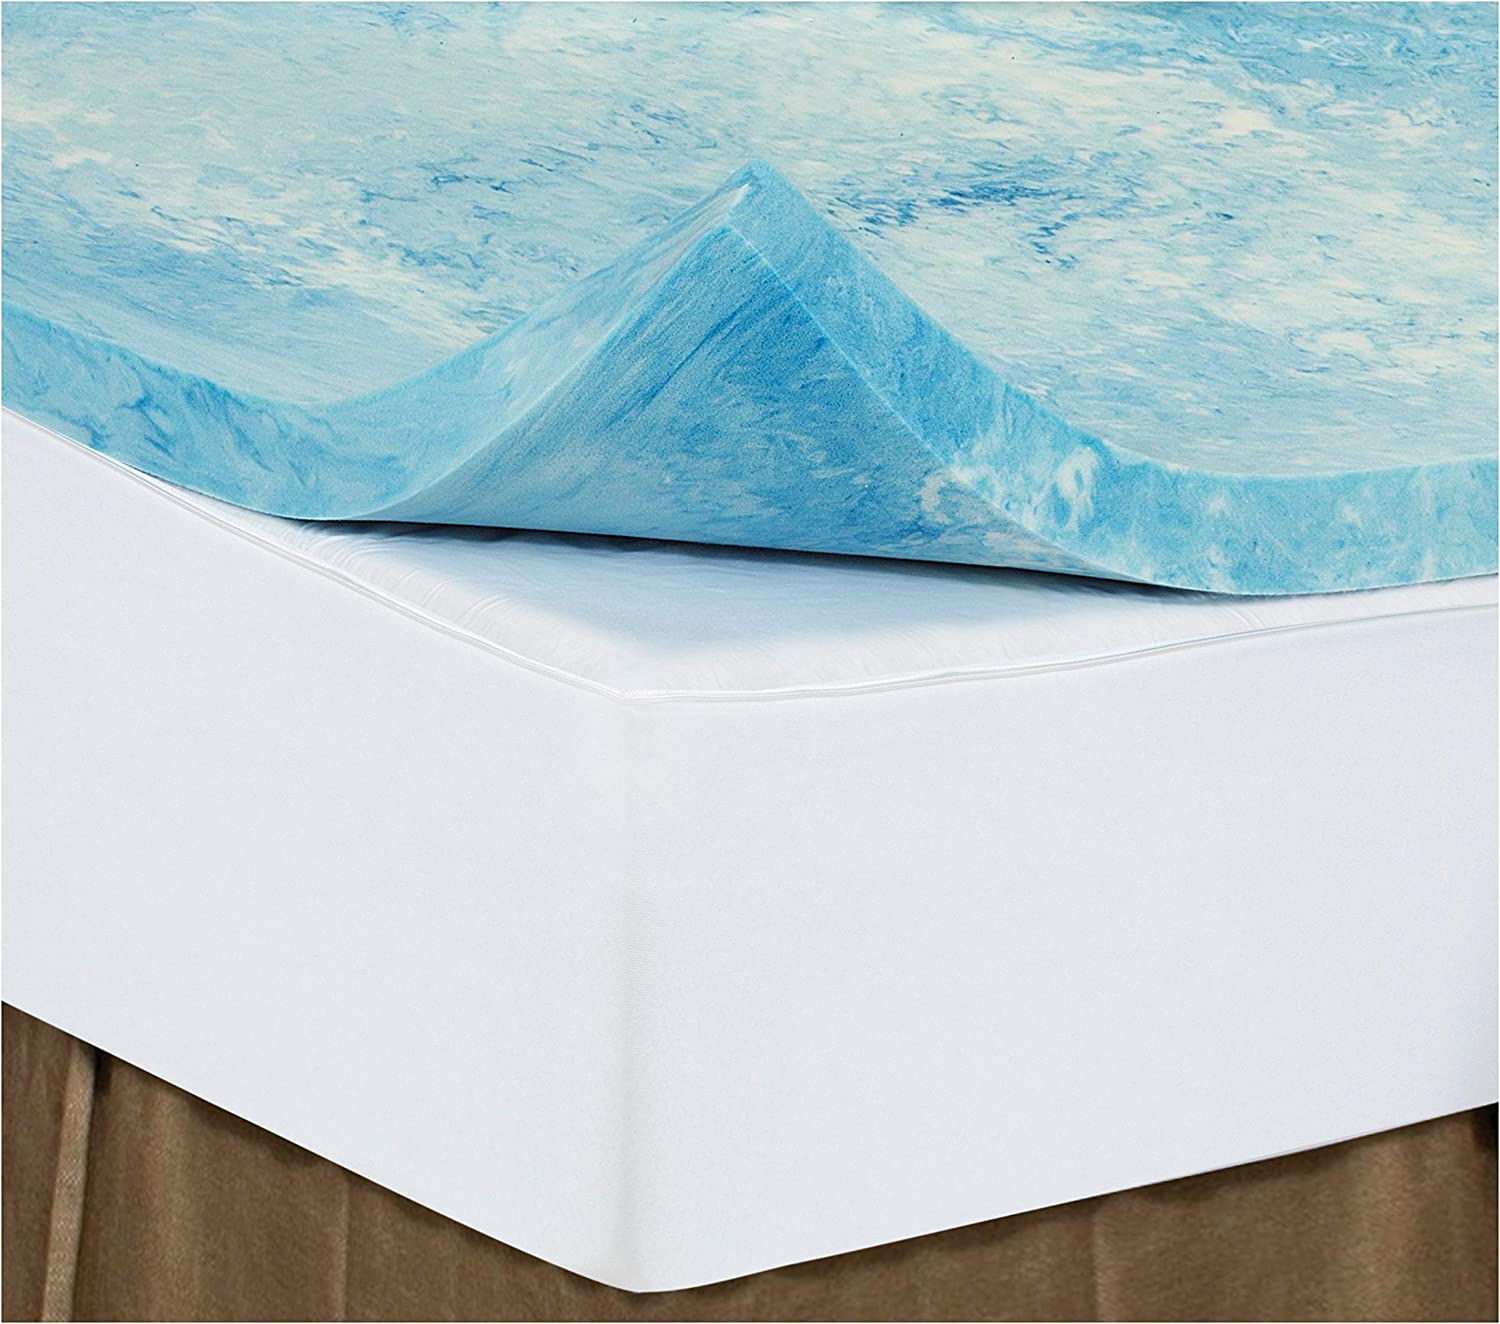 King 2 Inch iSoCore Gel Infused Swirl 6.0 Memory Foam Mattress Topper with Expandable Cover and Contour Pillow Included